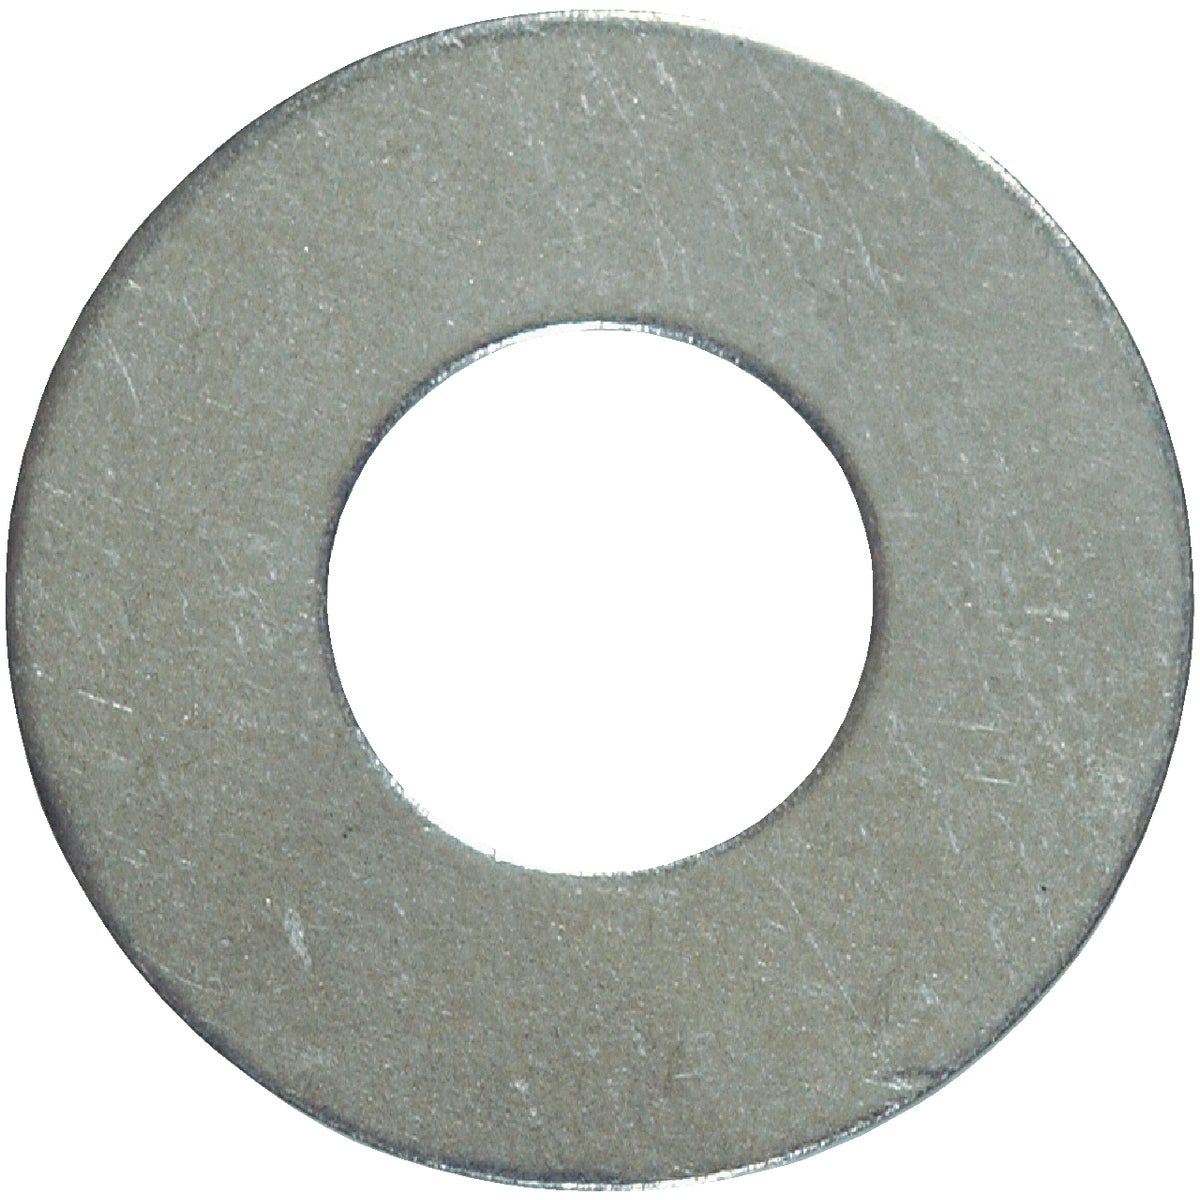 "3/8"" SS FLAT WASHER - 830506 by Hillman Fastener"